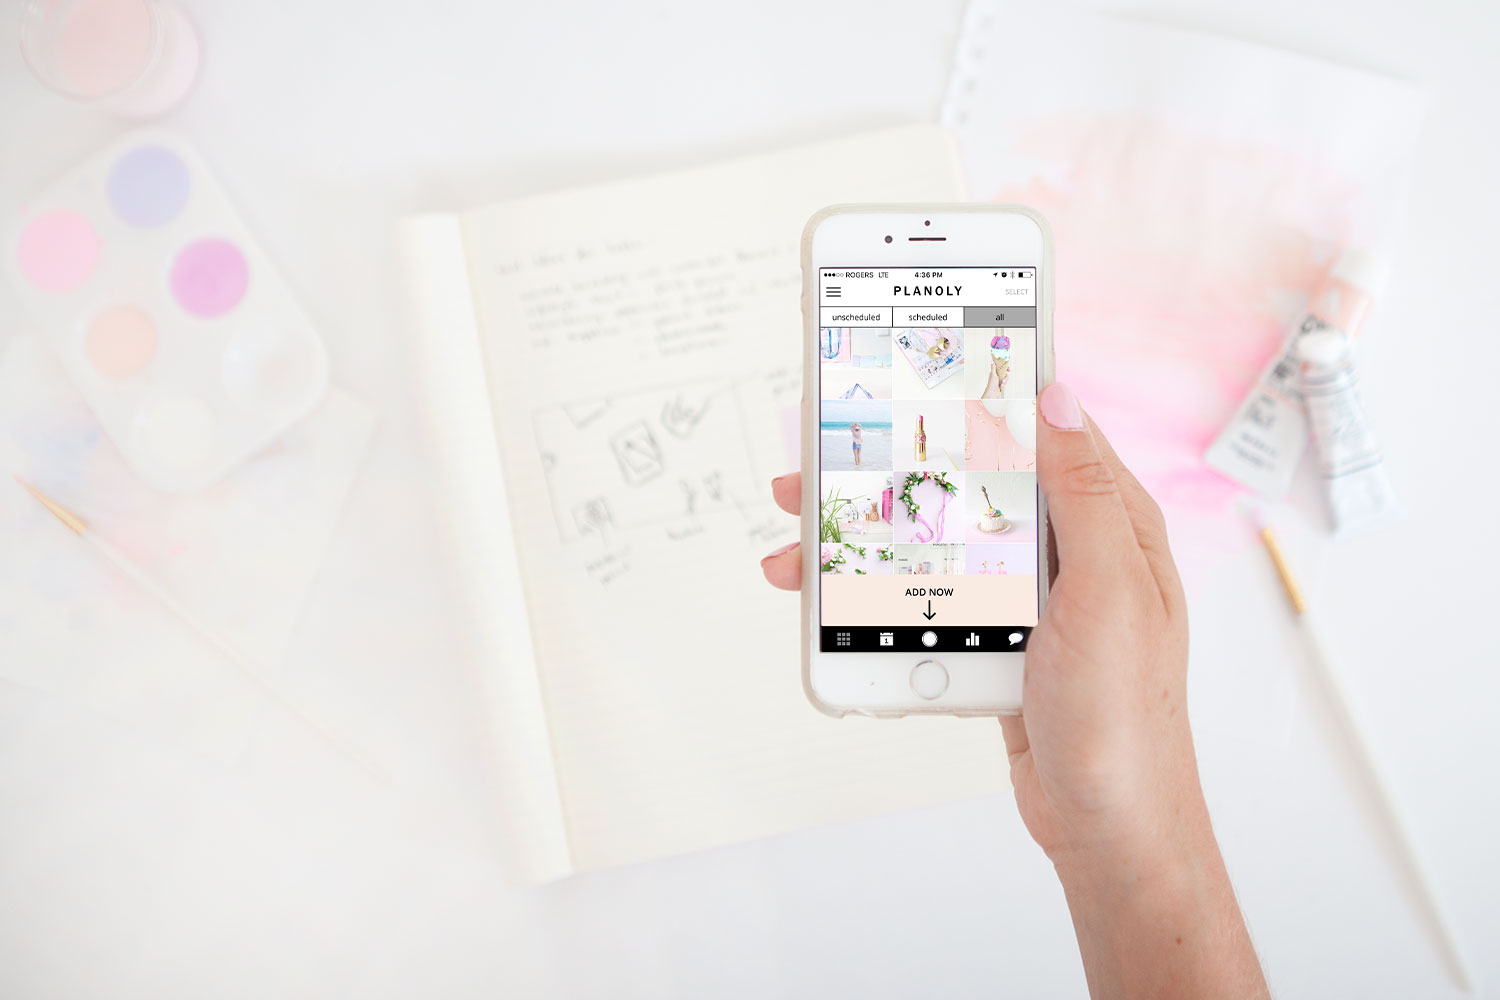 Anatomy of a instagram post by Paige for PLANOLY blog 2